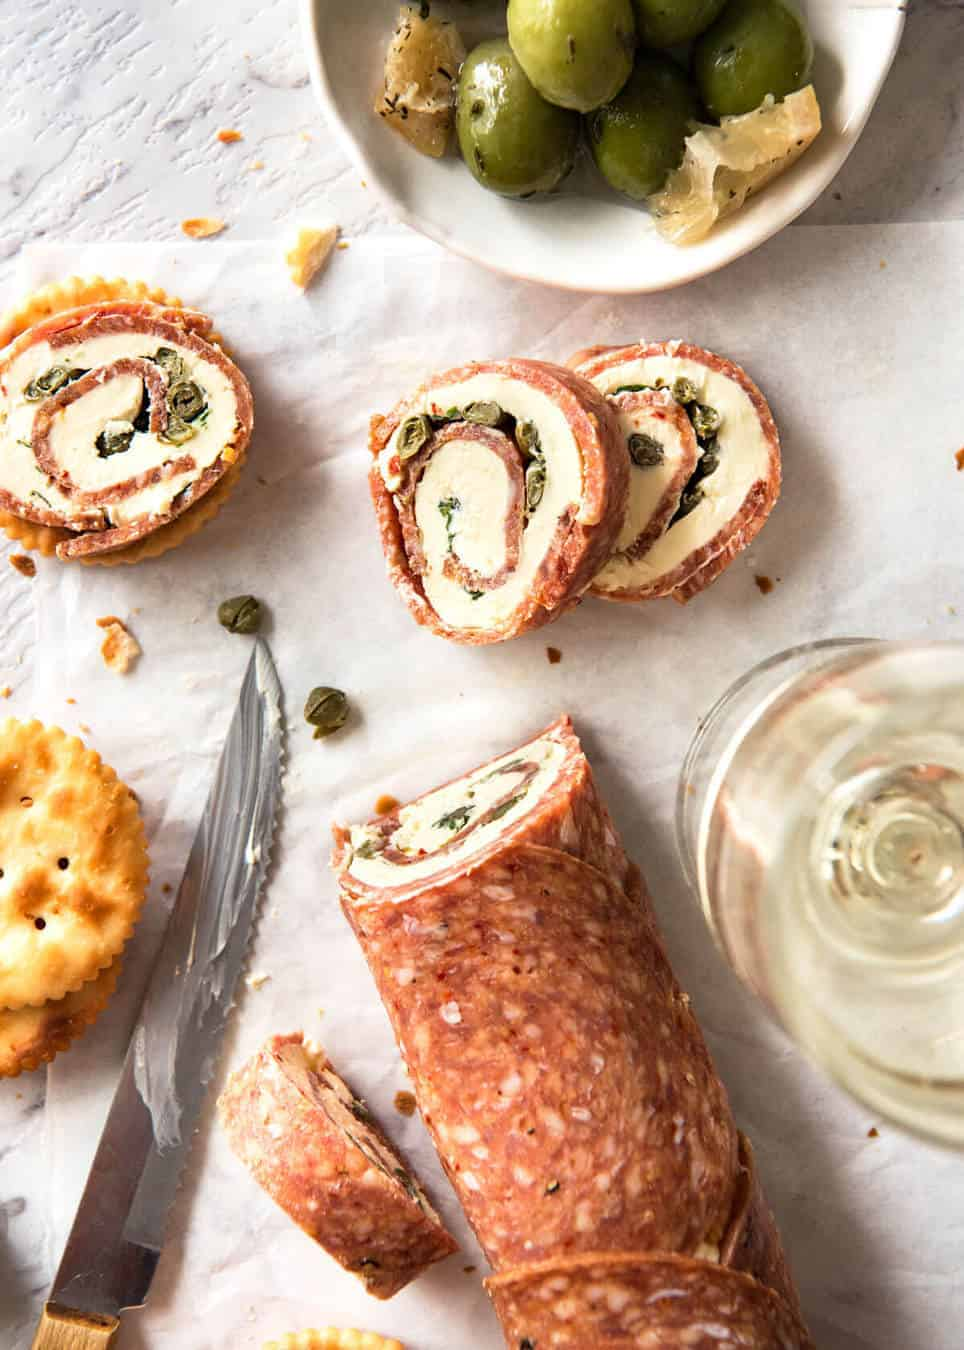 Salami Cream Cheese Roll Up - Great inexpensive party food idea! www.recipetineats.com